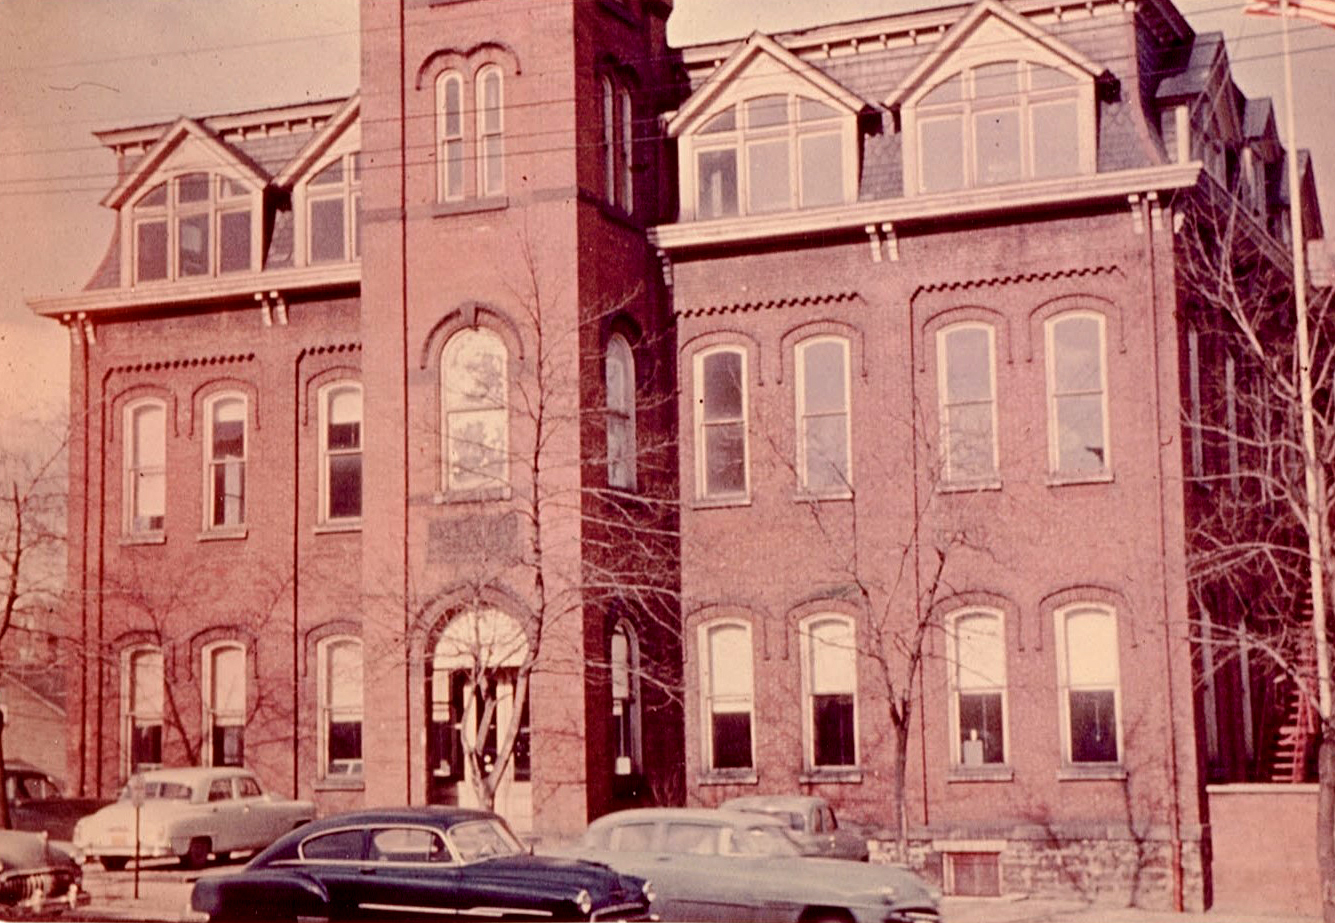 Vintage photo of the Webster School Building in Altoona